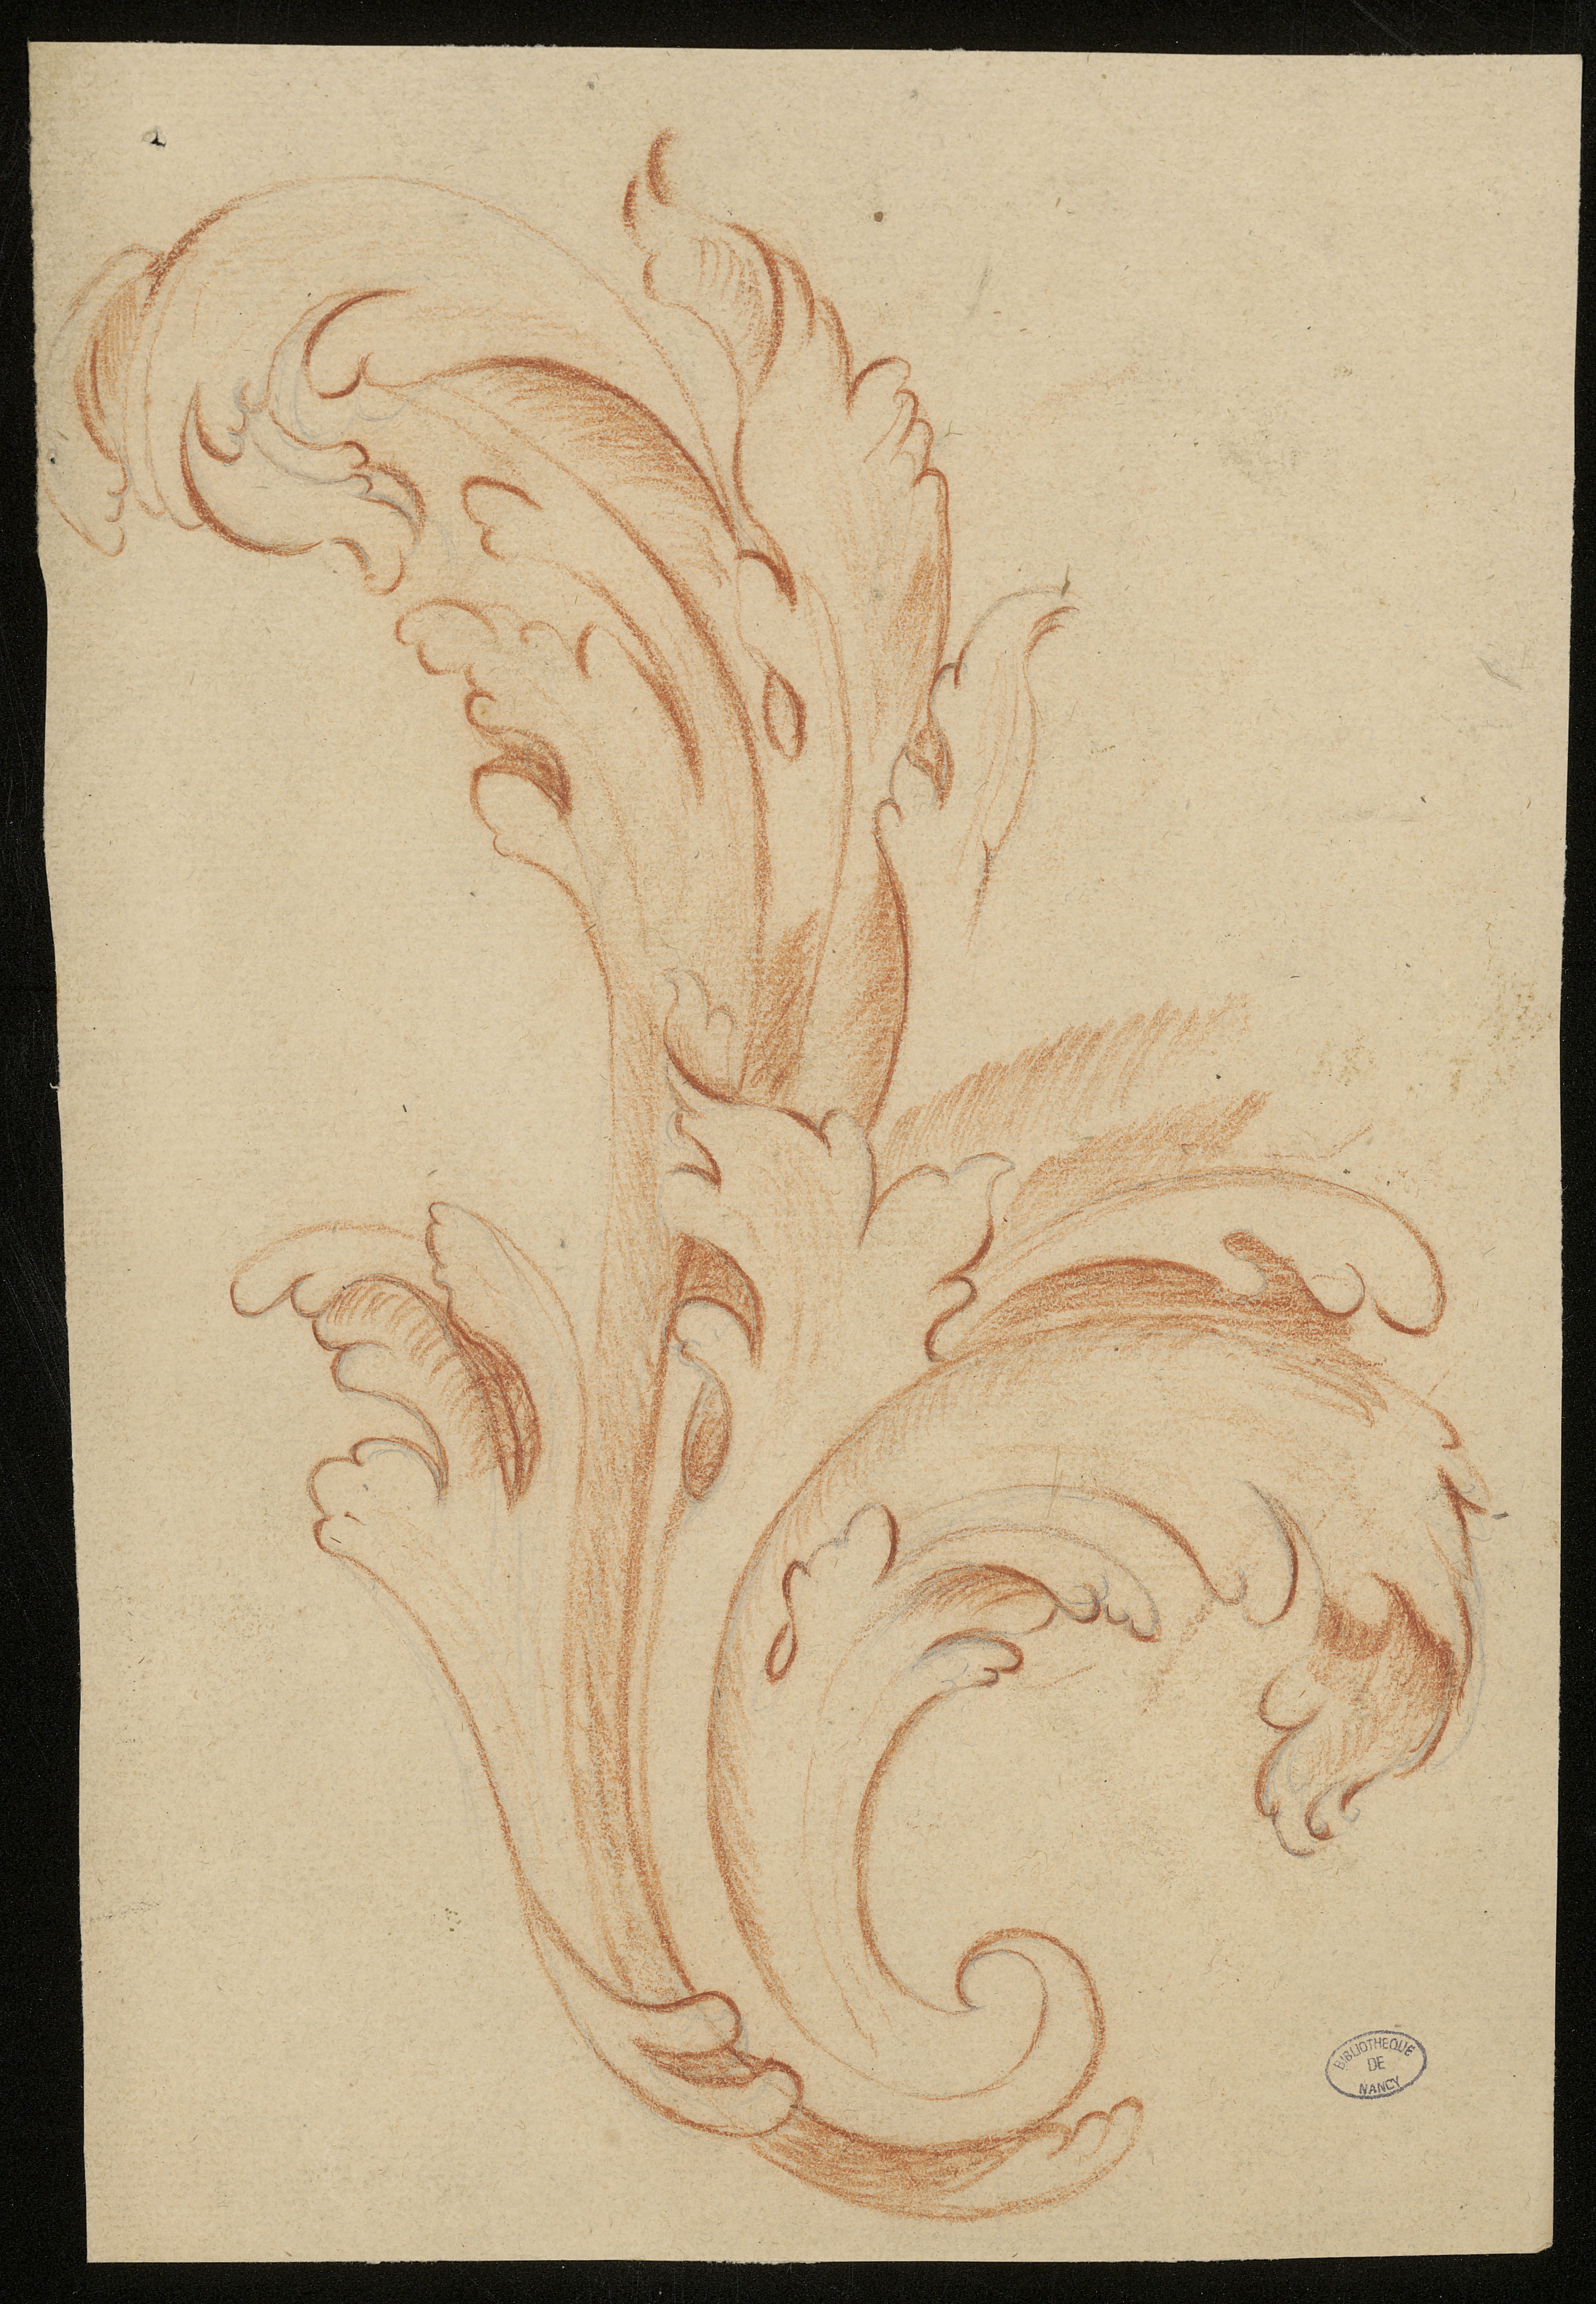 Motif d'ornement : feuille d'acanthe, anonyme